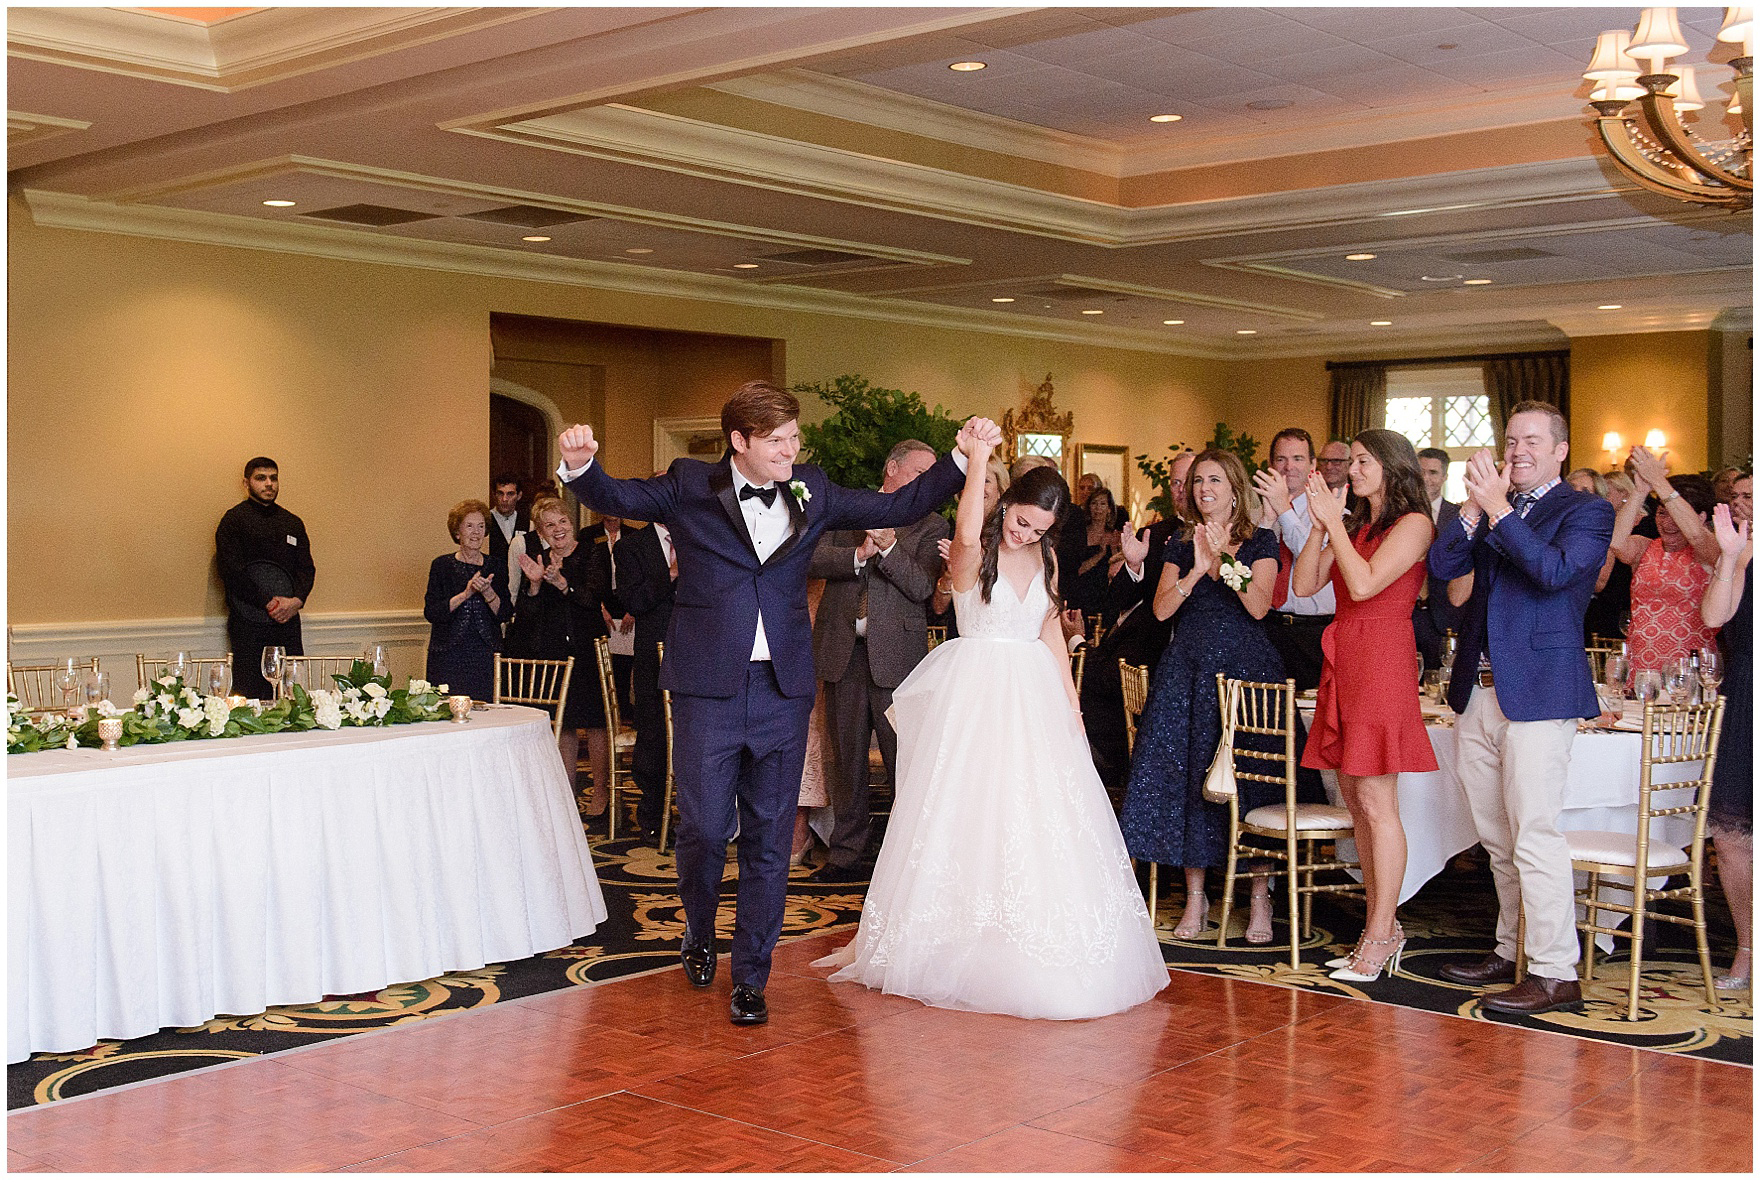 The bride and groom enter their reception to cheers during a Butterfield Country Club wedding.